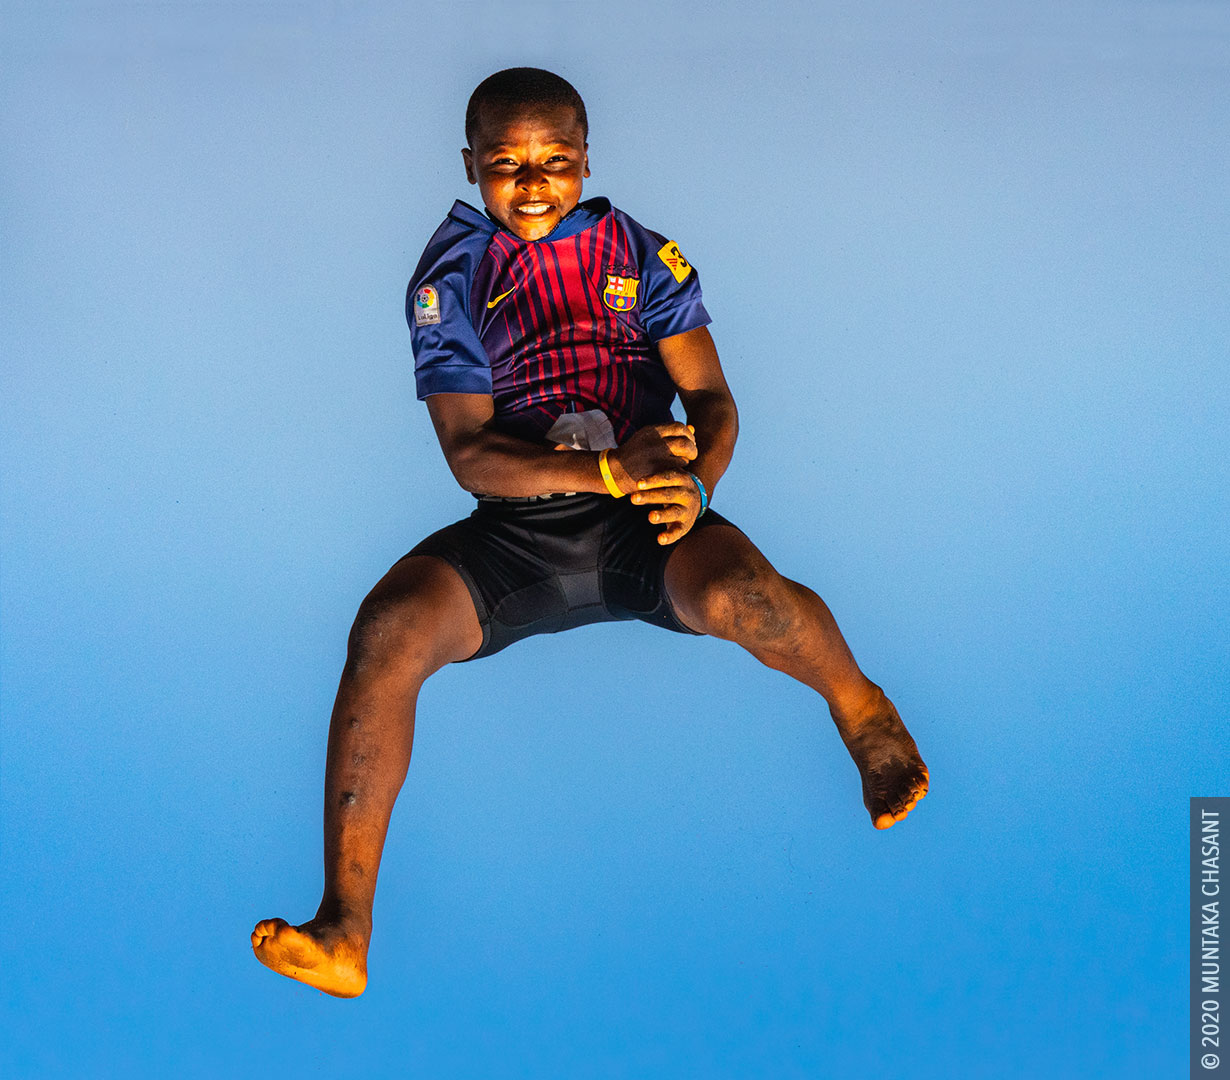 Slum Children in Africa: Urban poor boy playing at Agbogbloshie, Ghana. © 2020 Muntaka Chasant